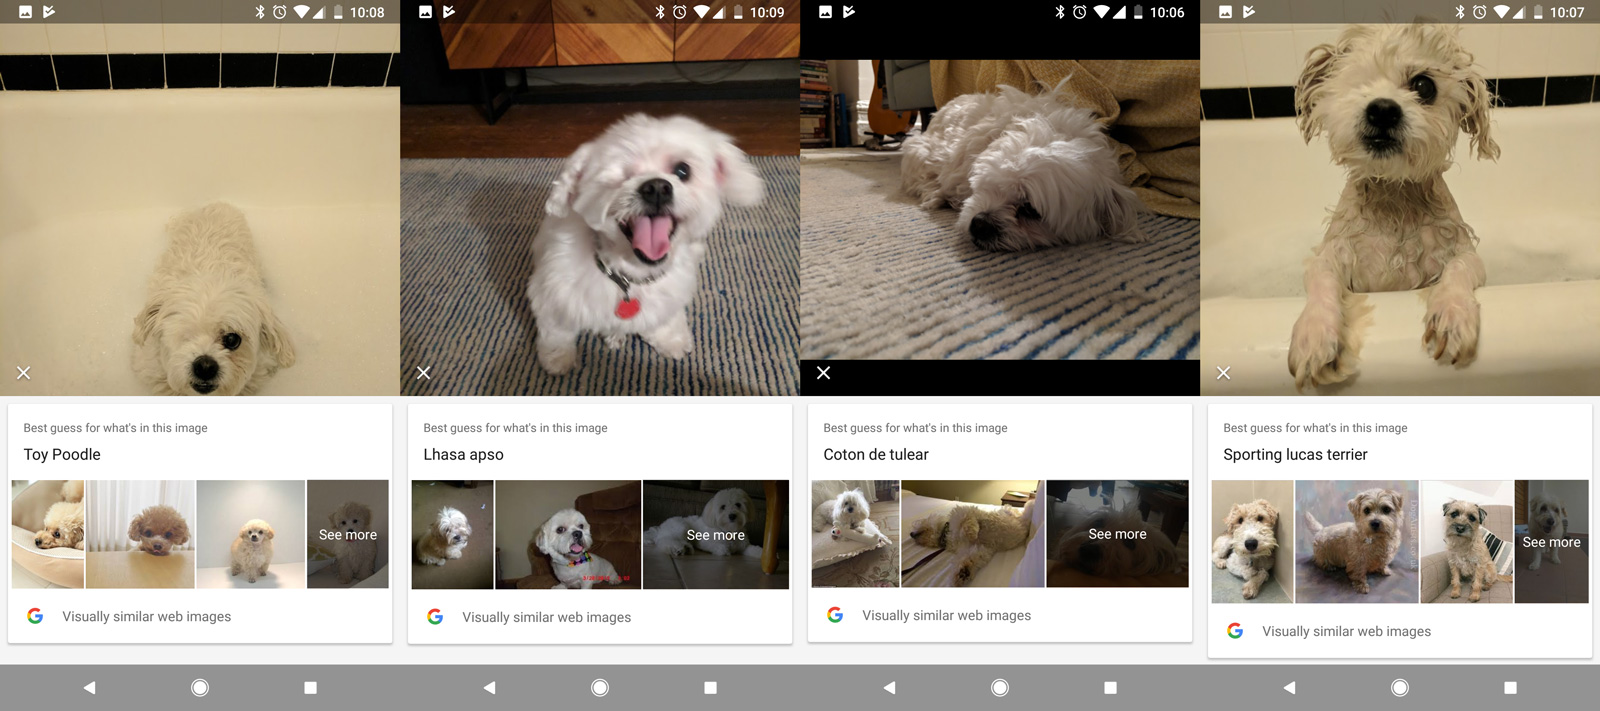 Pirate, the dog, through Google's Lens.